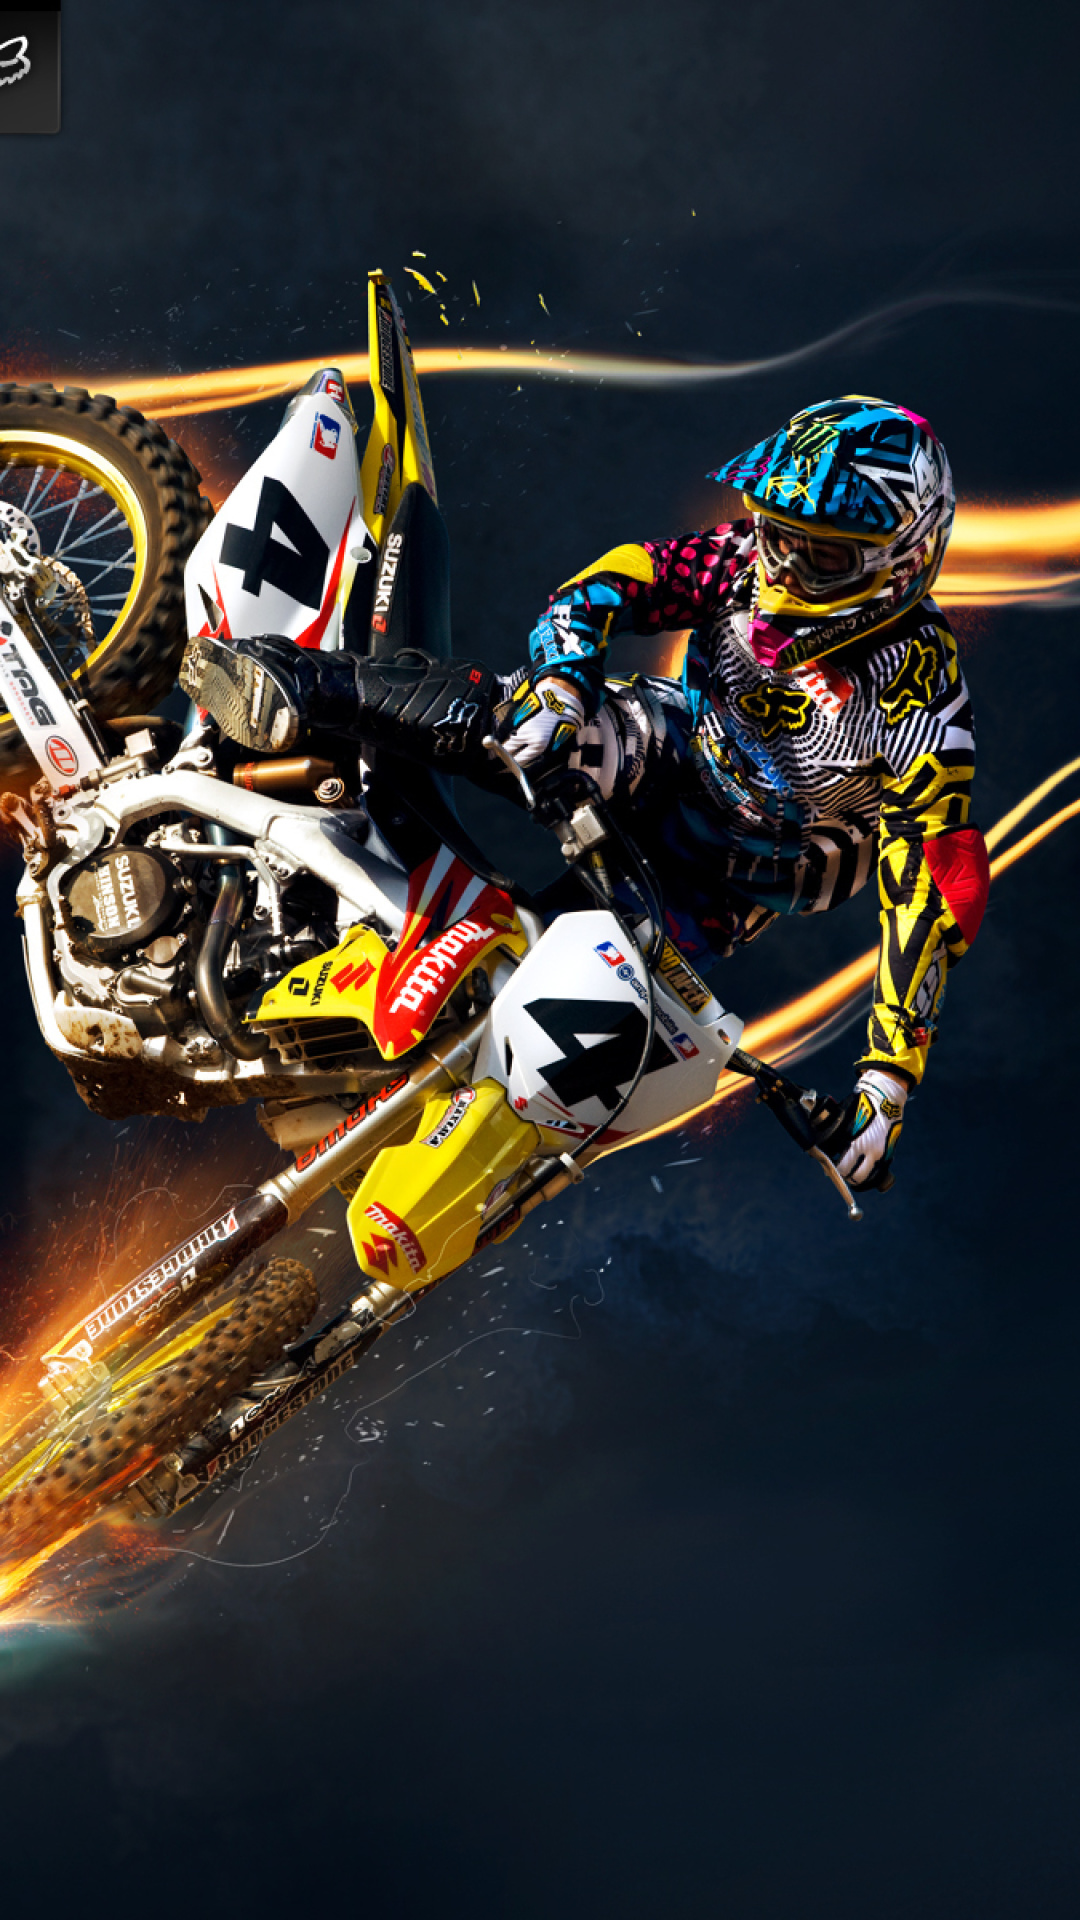 Freestyle Motocross Wallpaper for iPhone 6 Plus